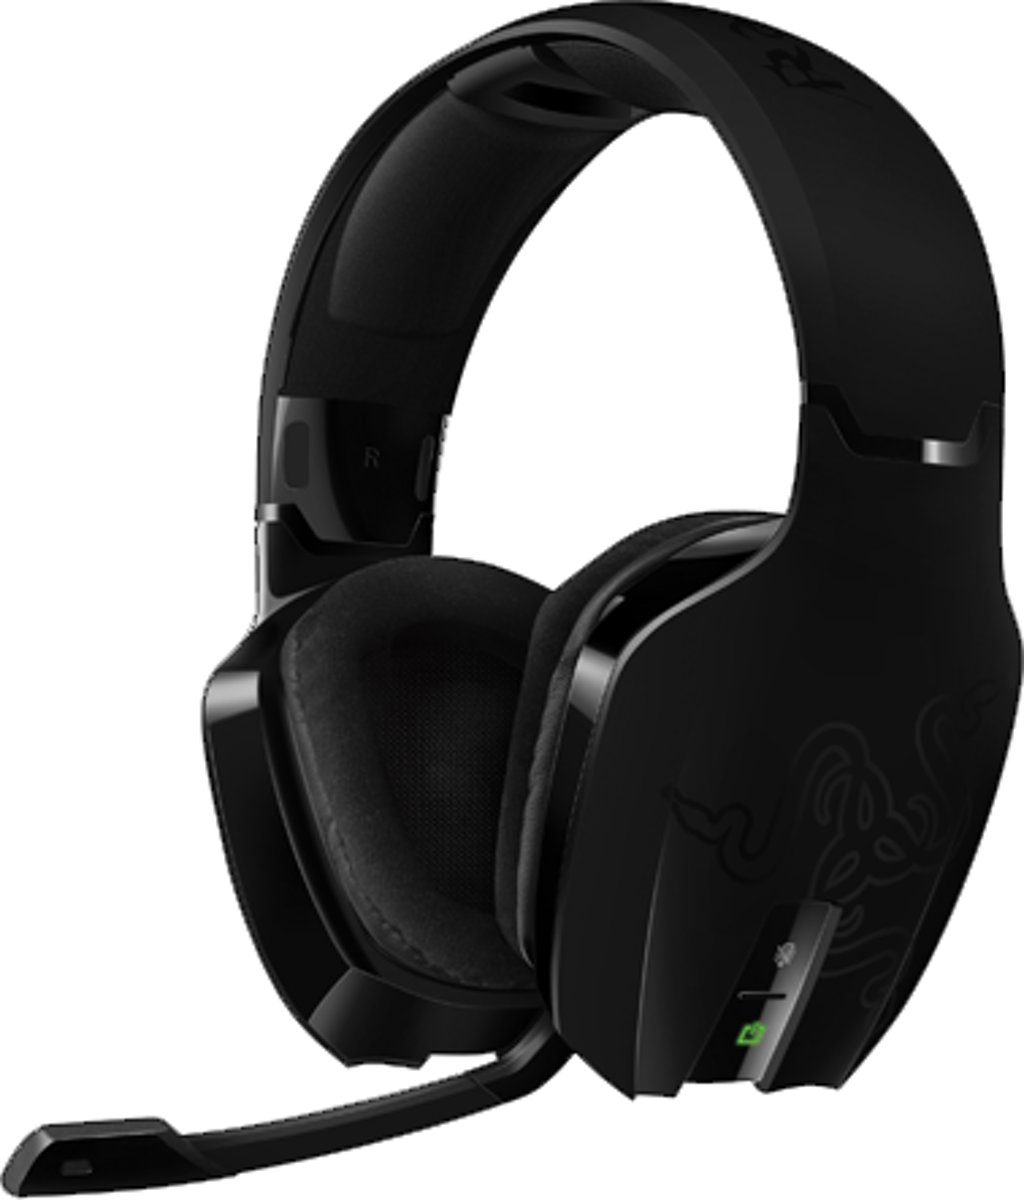 Chimaera Wireless 5.1 Virtueel Surround Gaming Headset - Zwart (PC + Xbox 360)